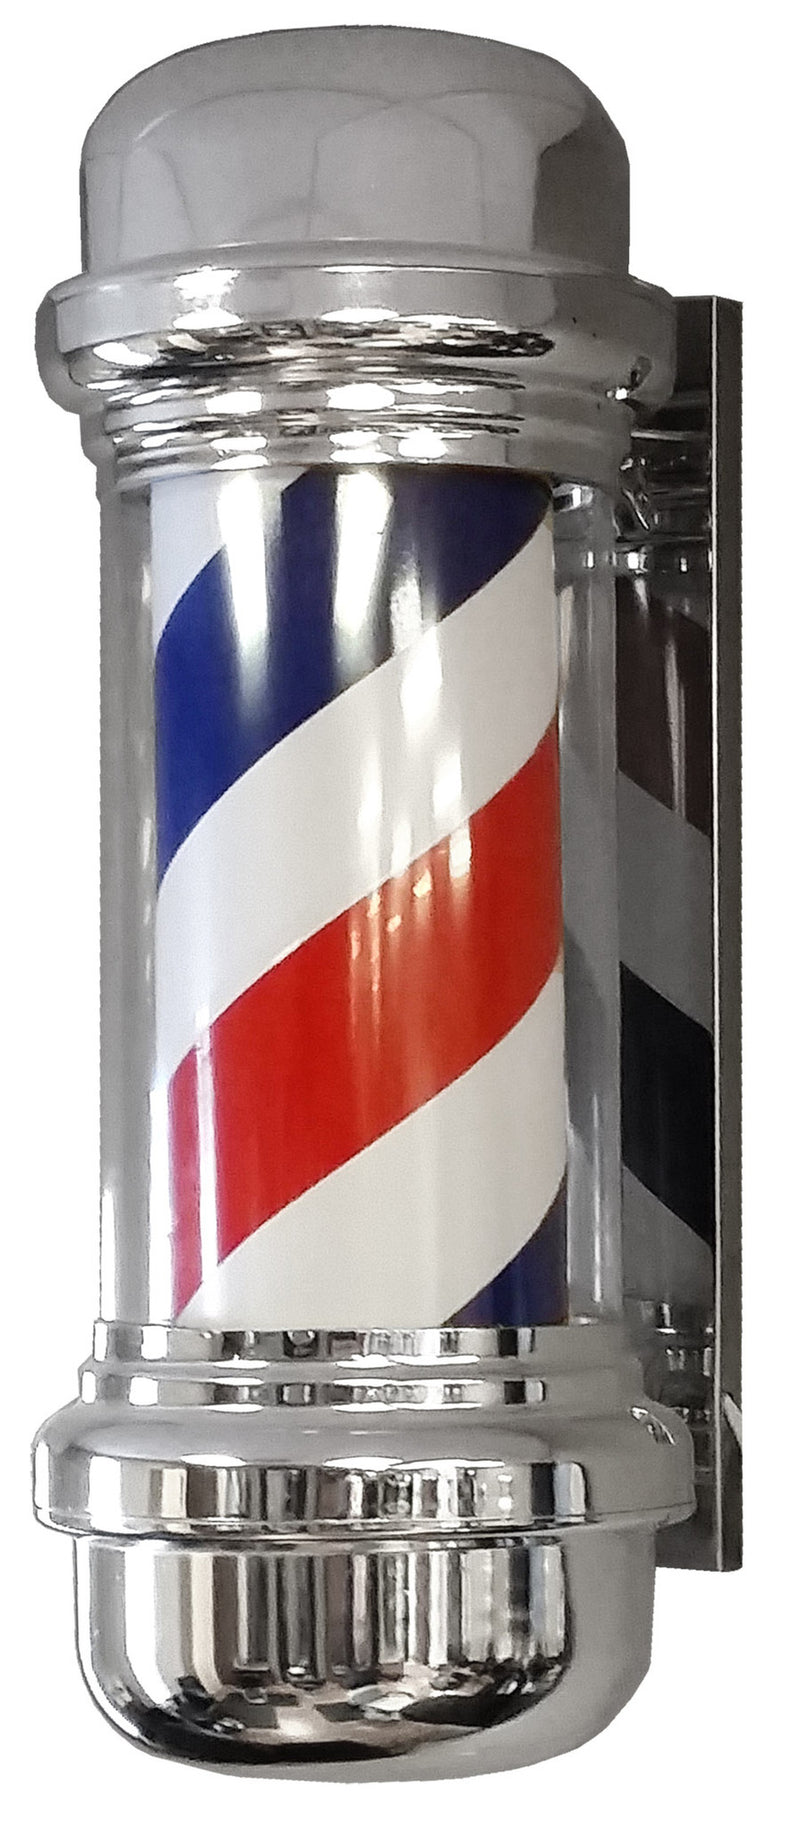 Barber Pole with light